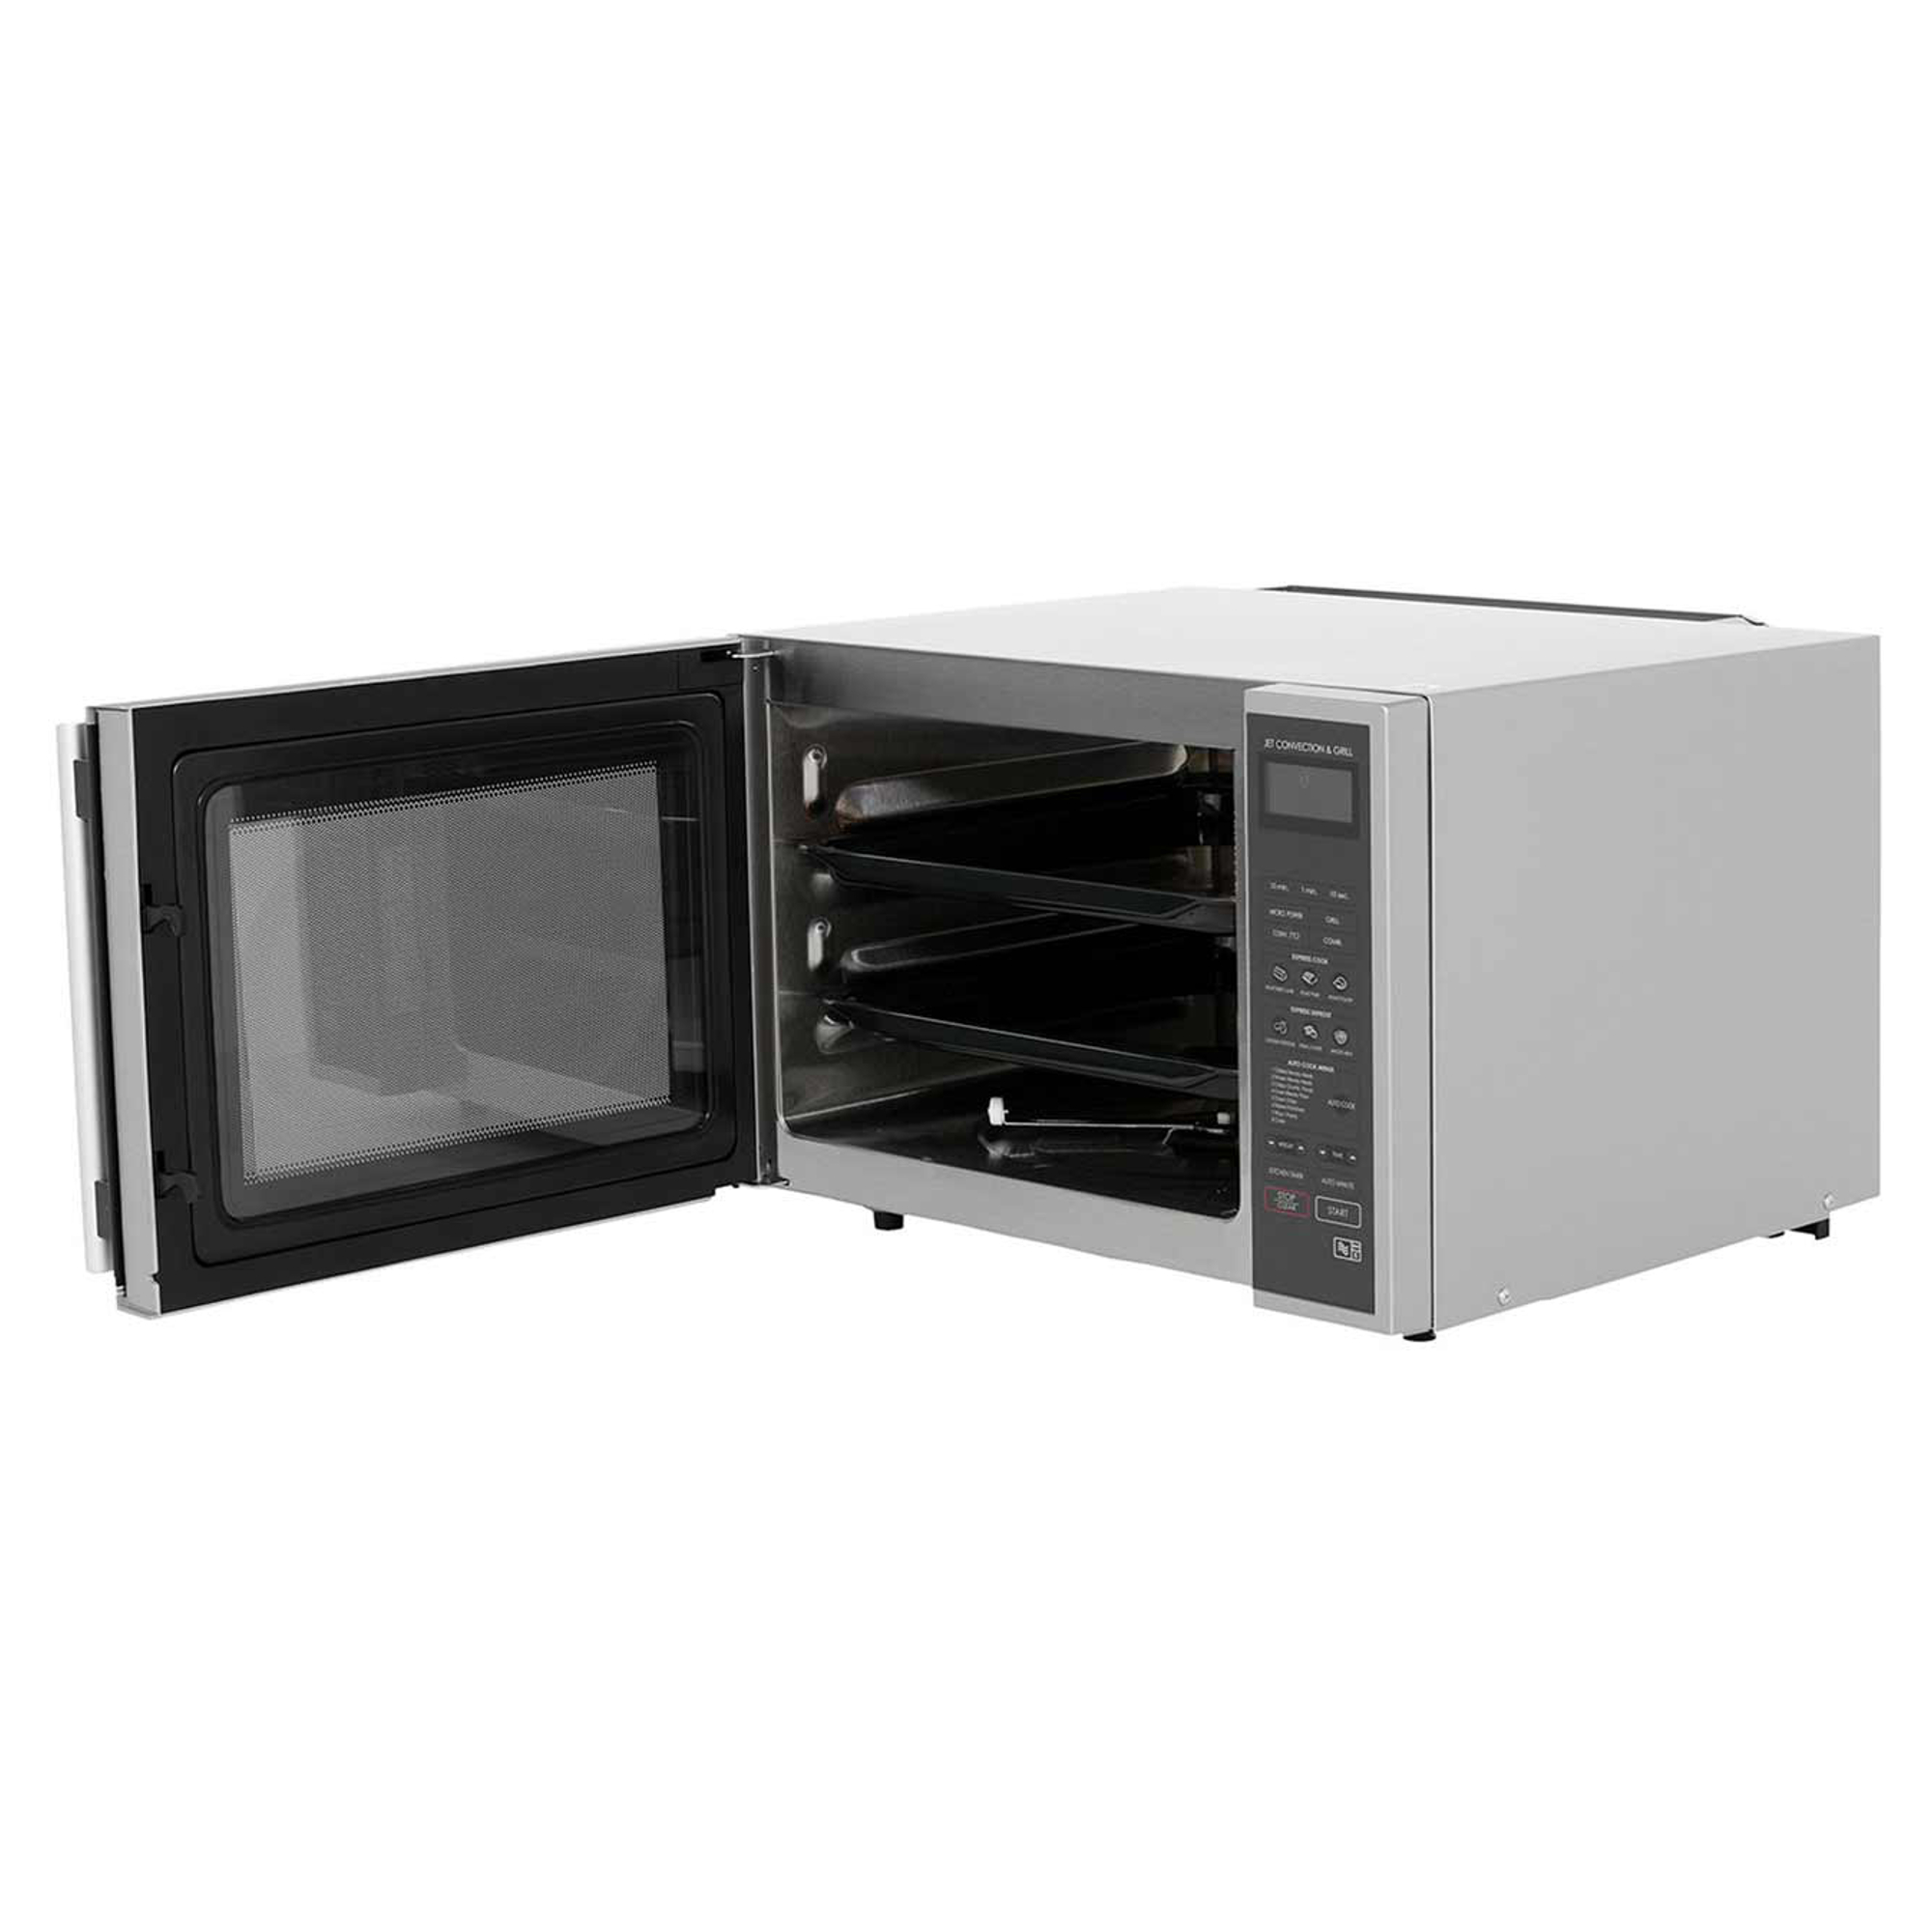 Sharp-R959SLMAA-900w-40Litre-Convection-Grill-Microwave-in-Silver-Black thumbnail 2